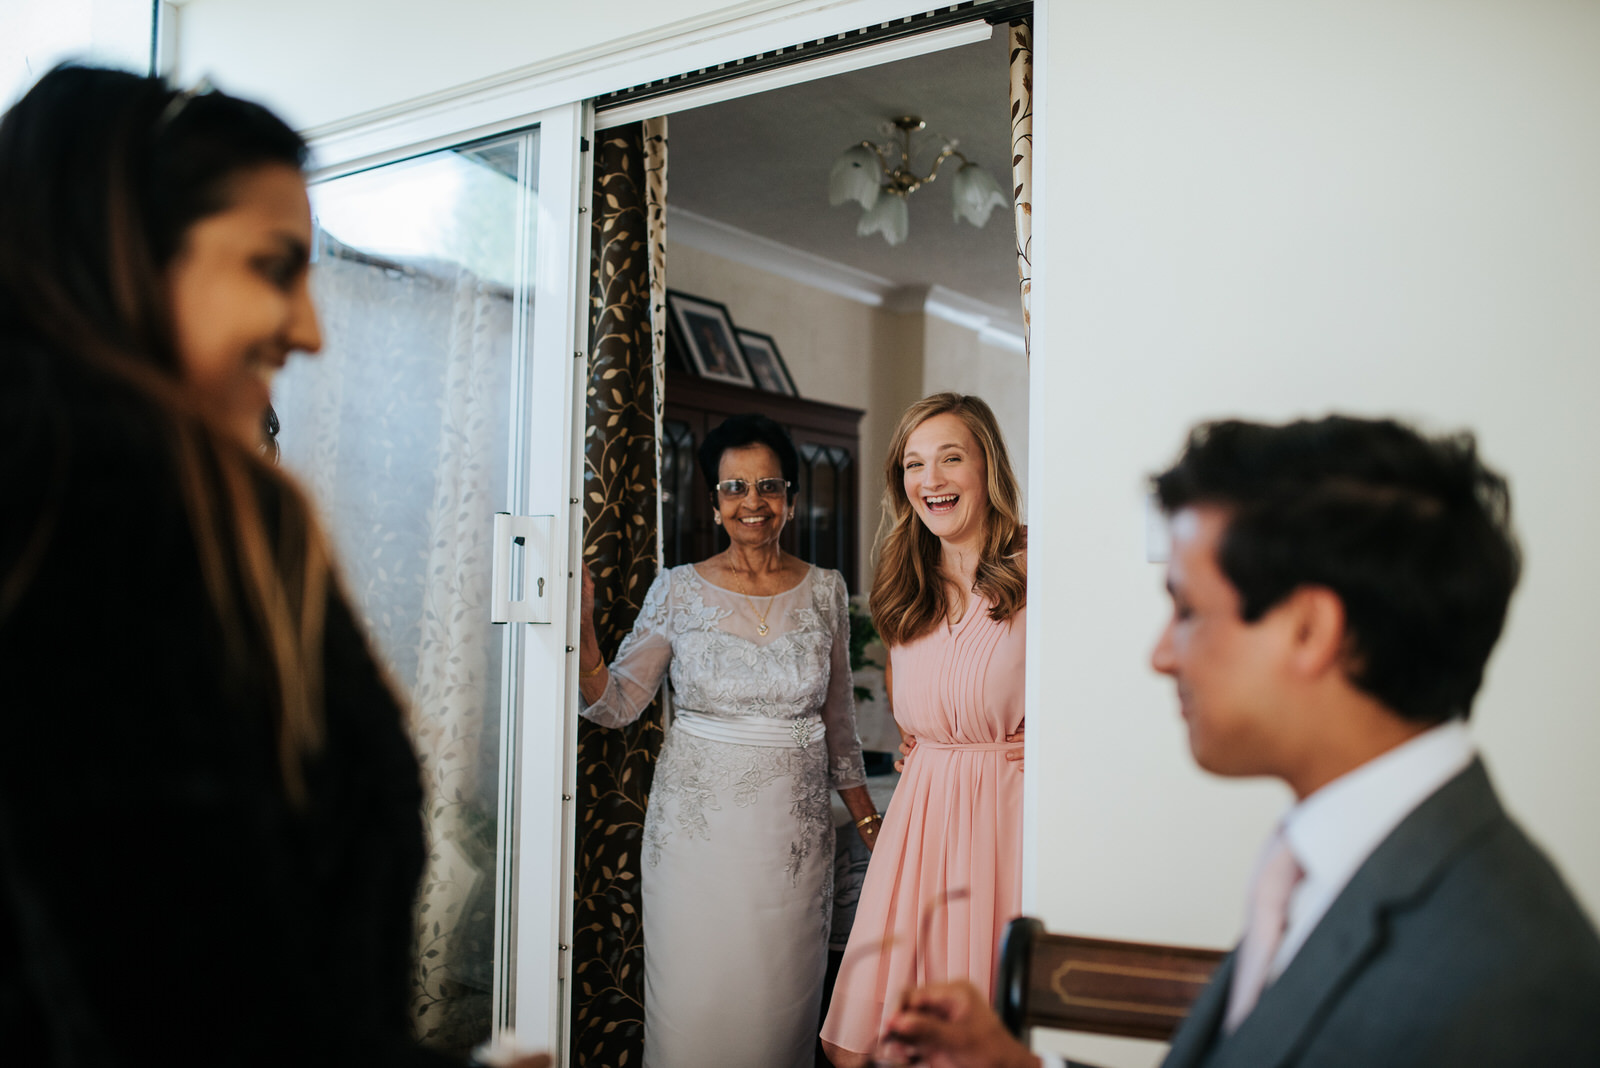 Girlfriend of bride's brother smiles as he has his hair done